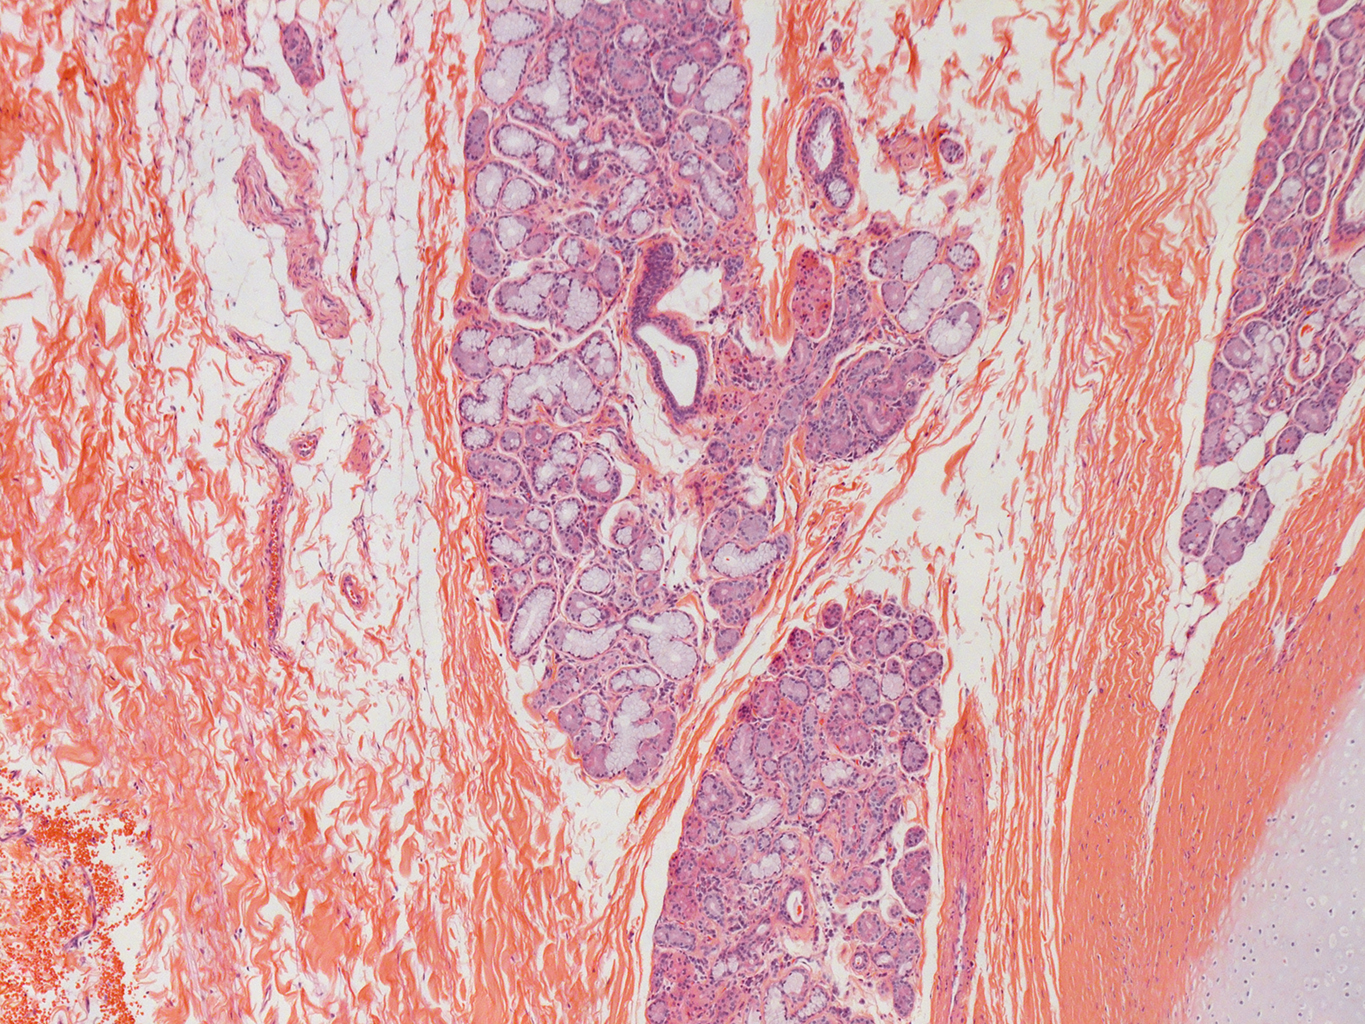 H&E Staining of 29 Year-Old Human Donor D175-10C2.13